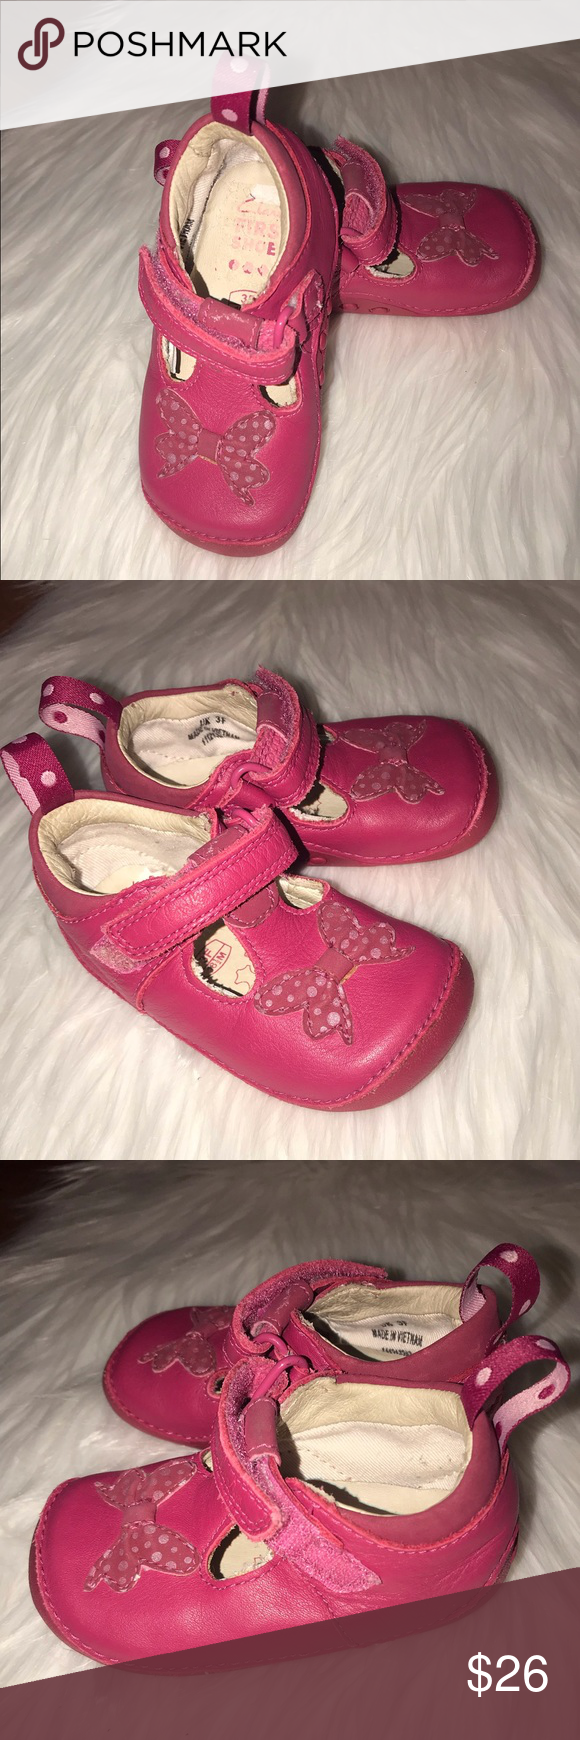 Infant Girls Leather T-Strap Shoes Size